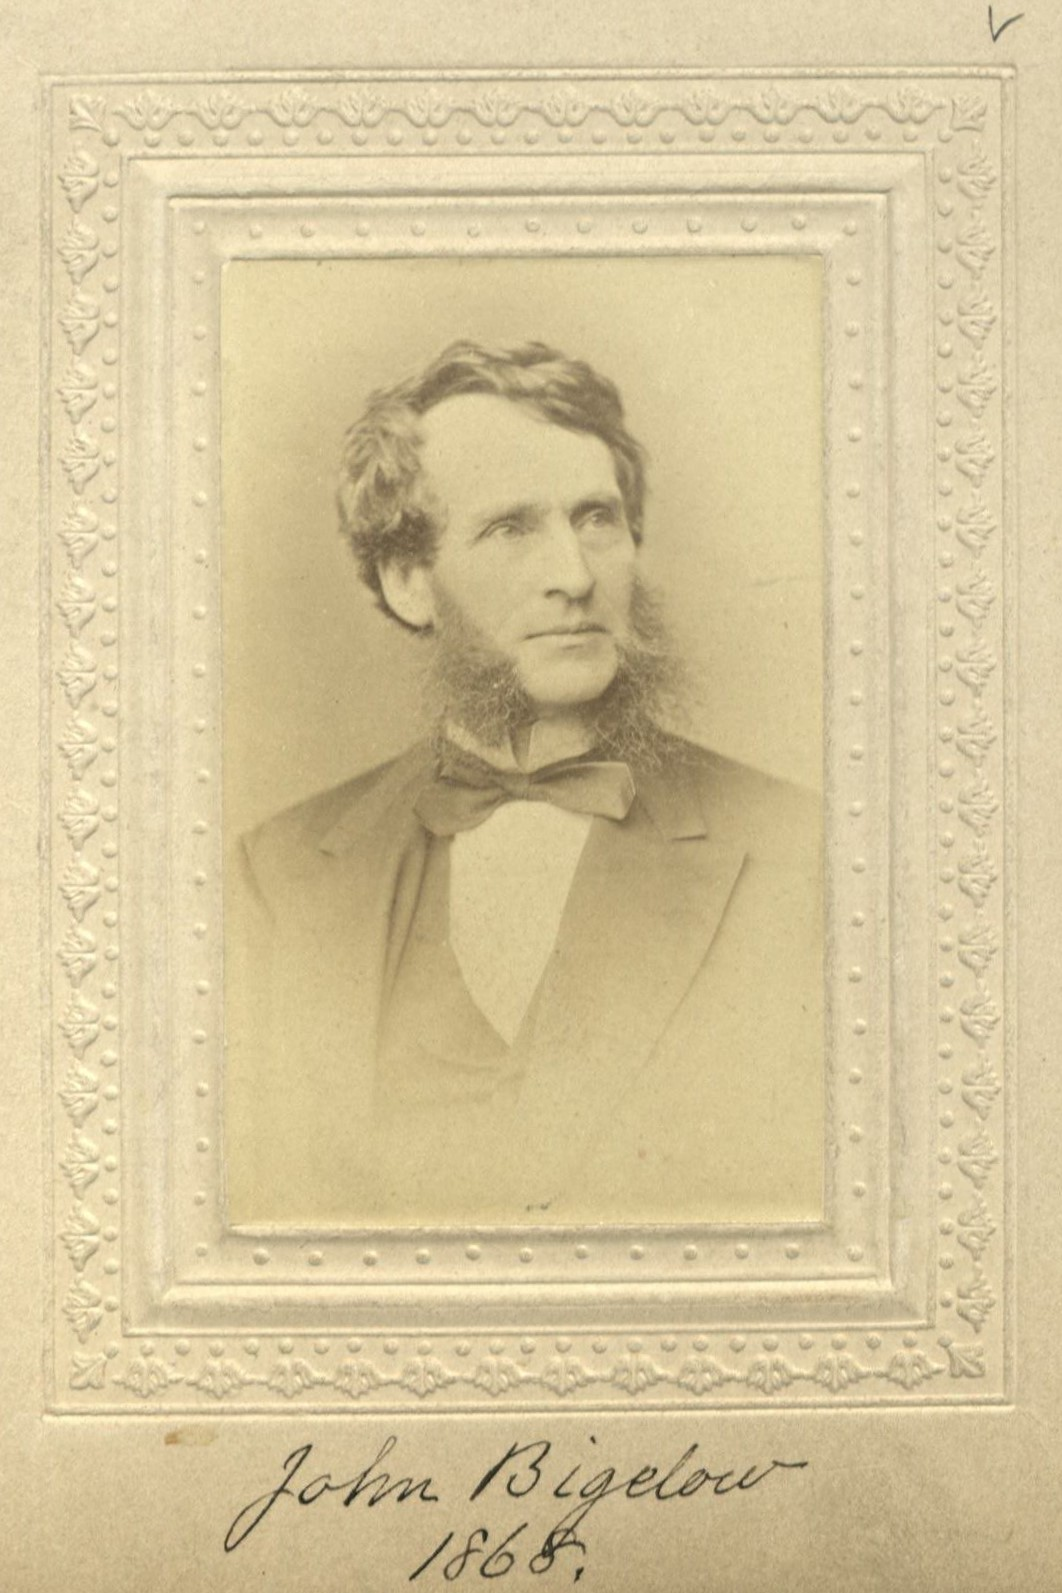 Member portrait of John Bigelow